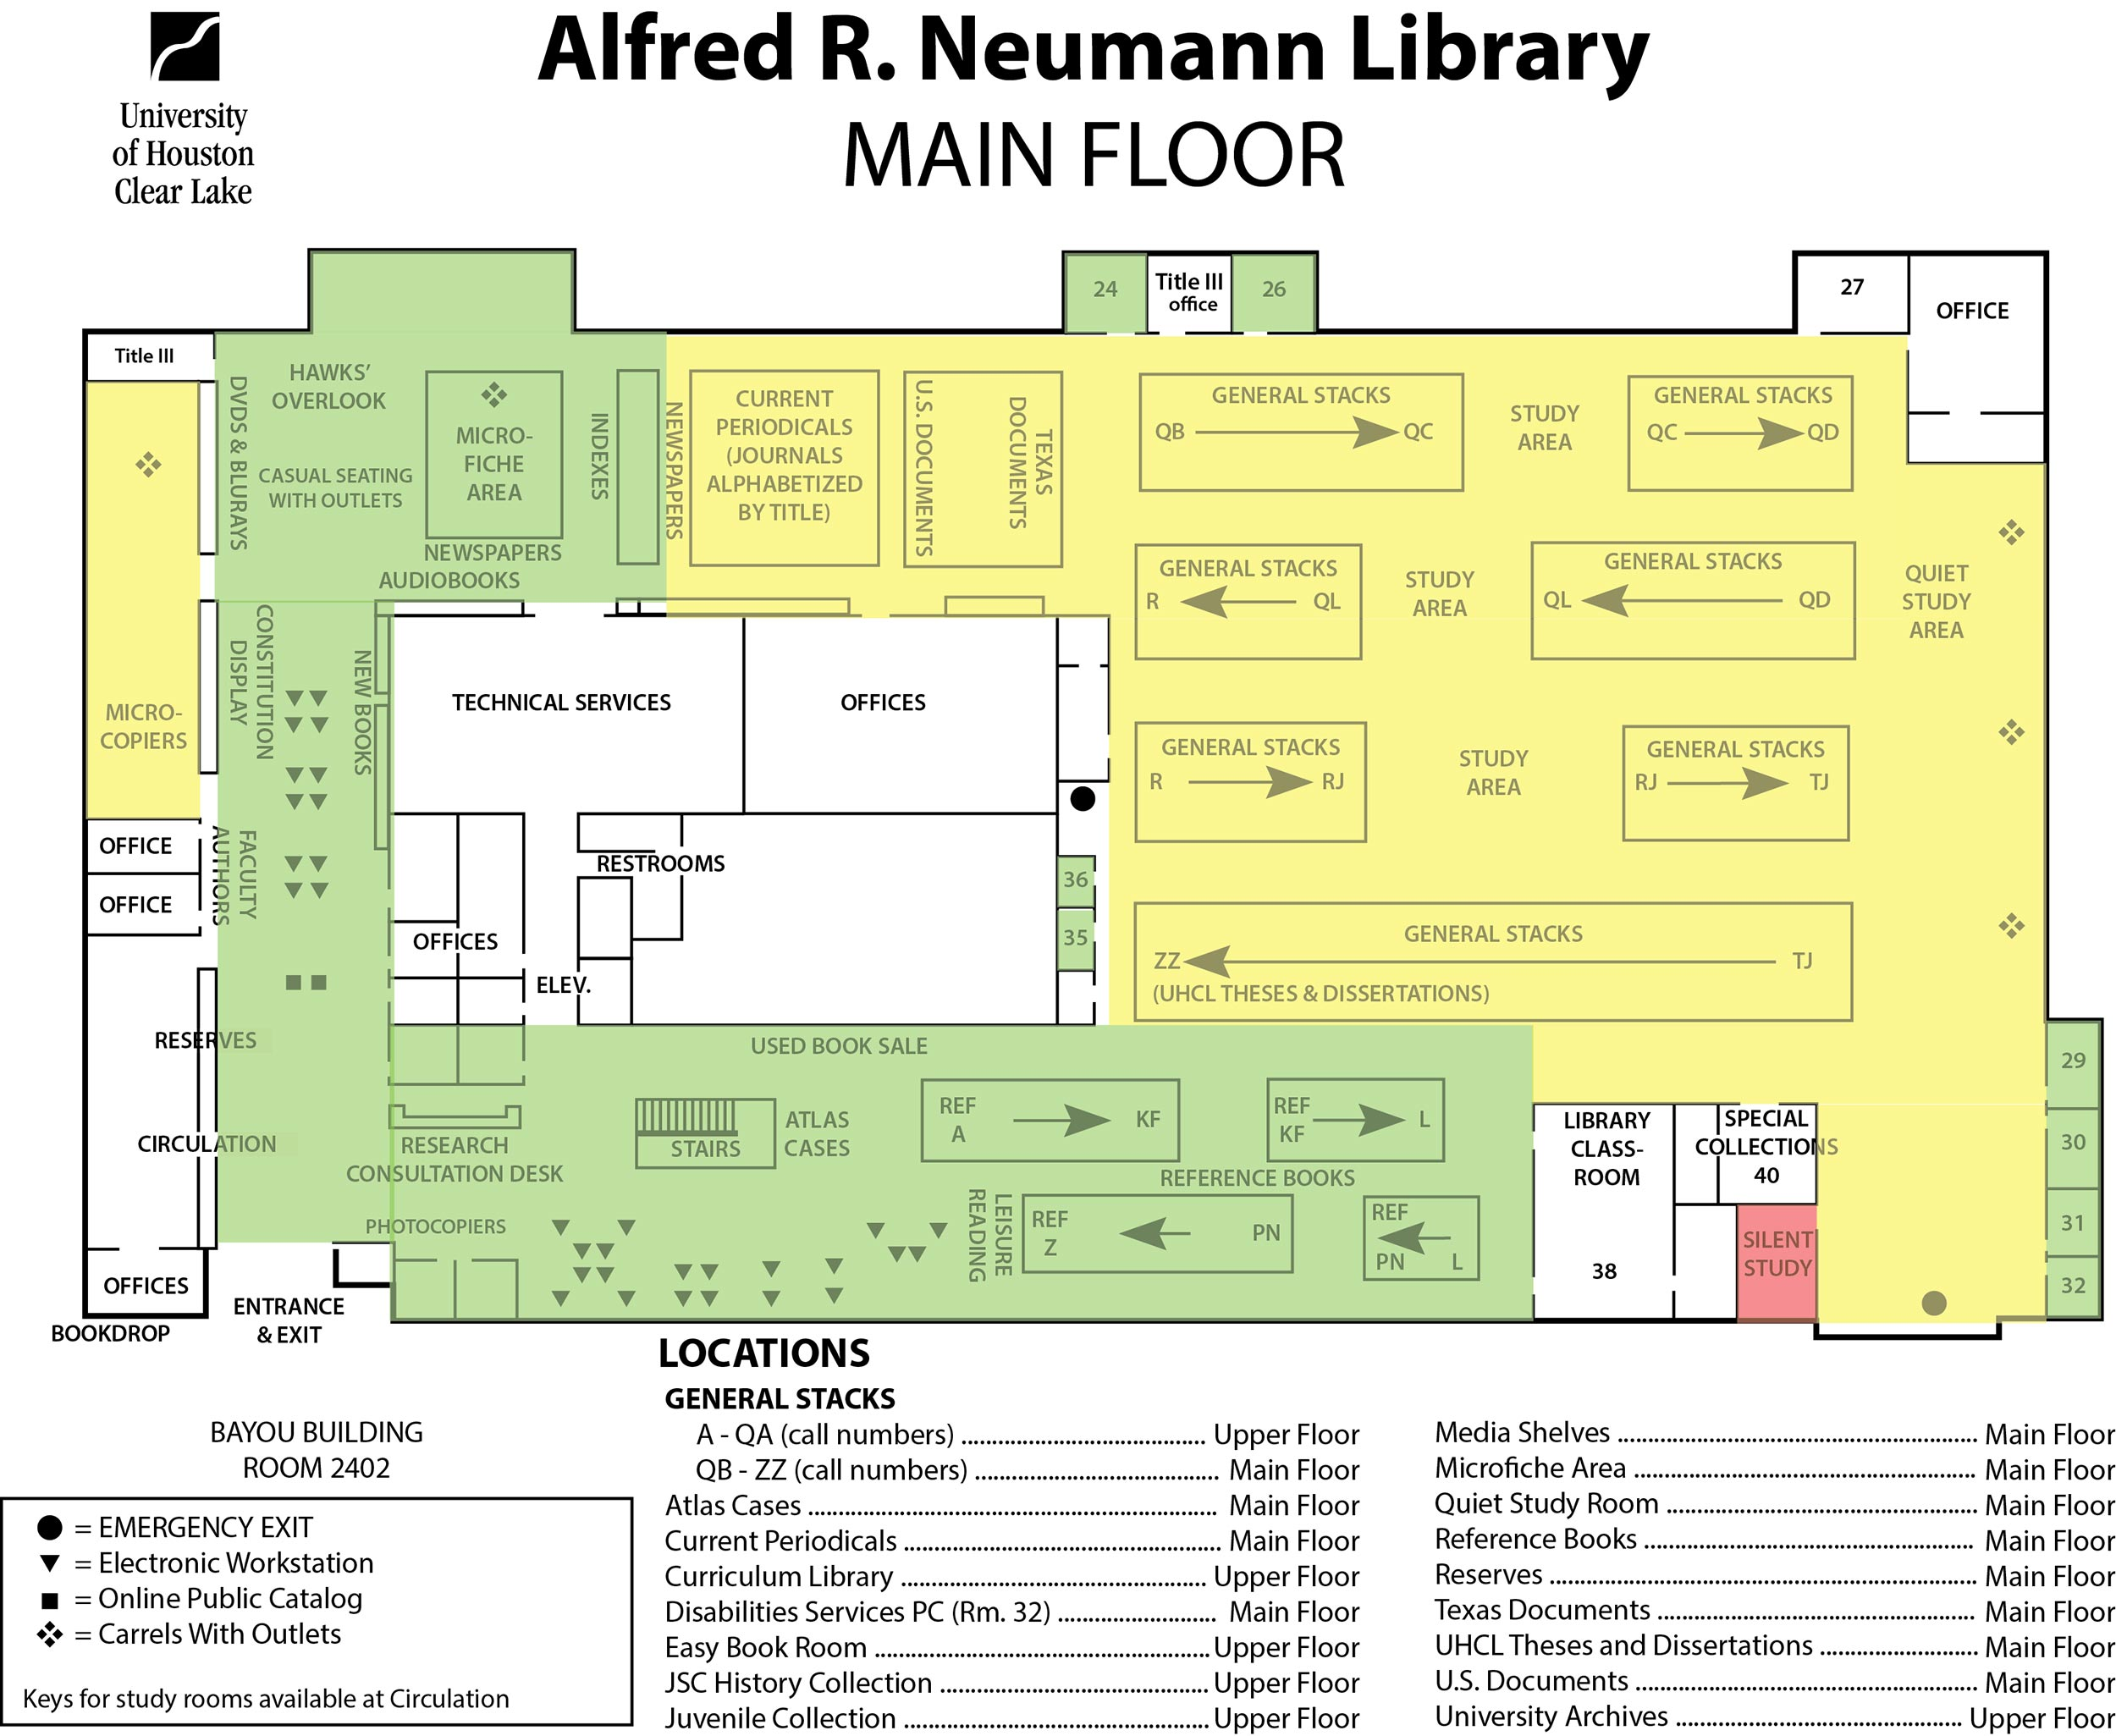 Library Main Floor map